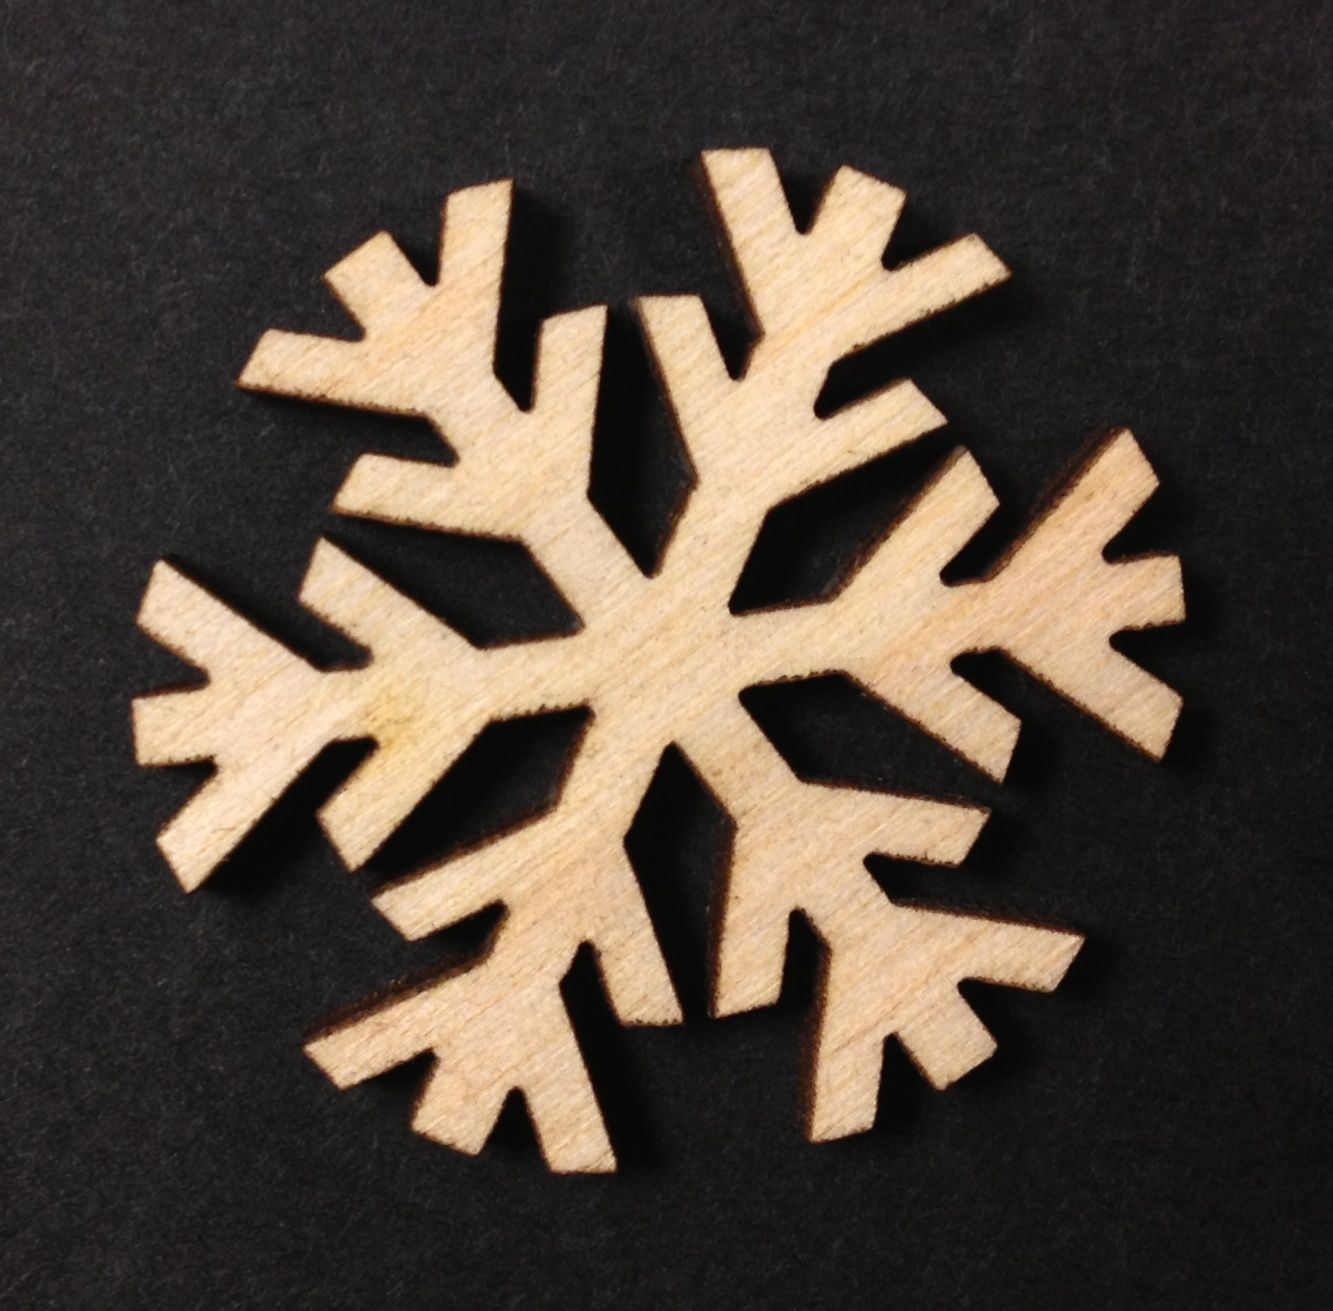 Mini Wooden Snowflakes Xmas Decoration 30mm Pack Of 10